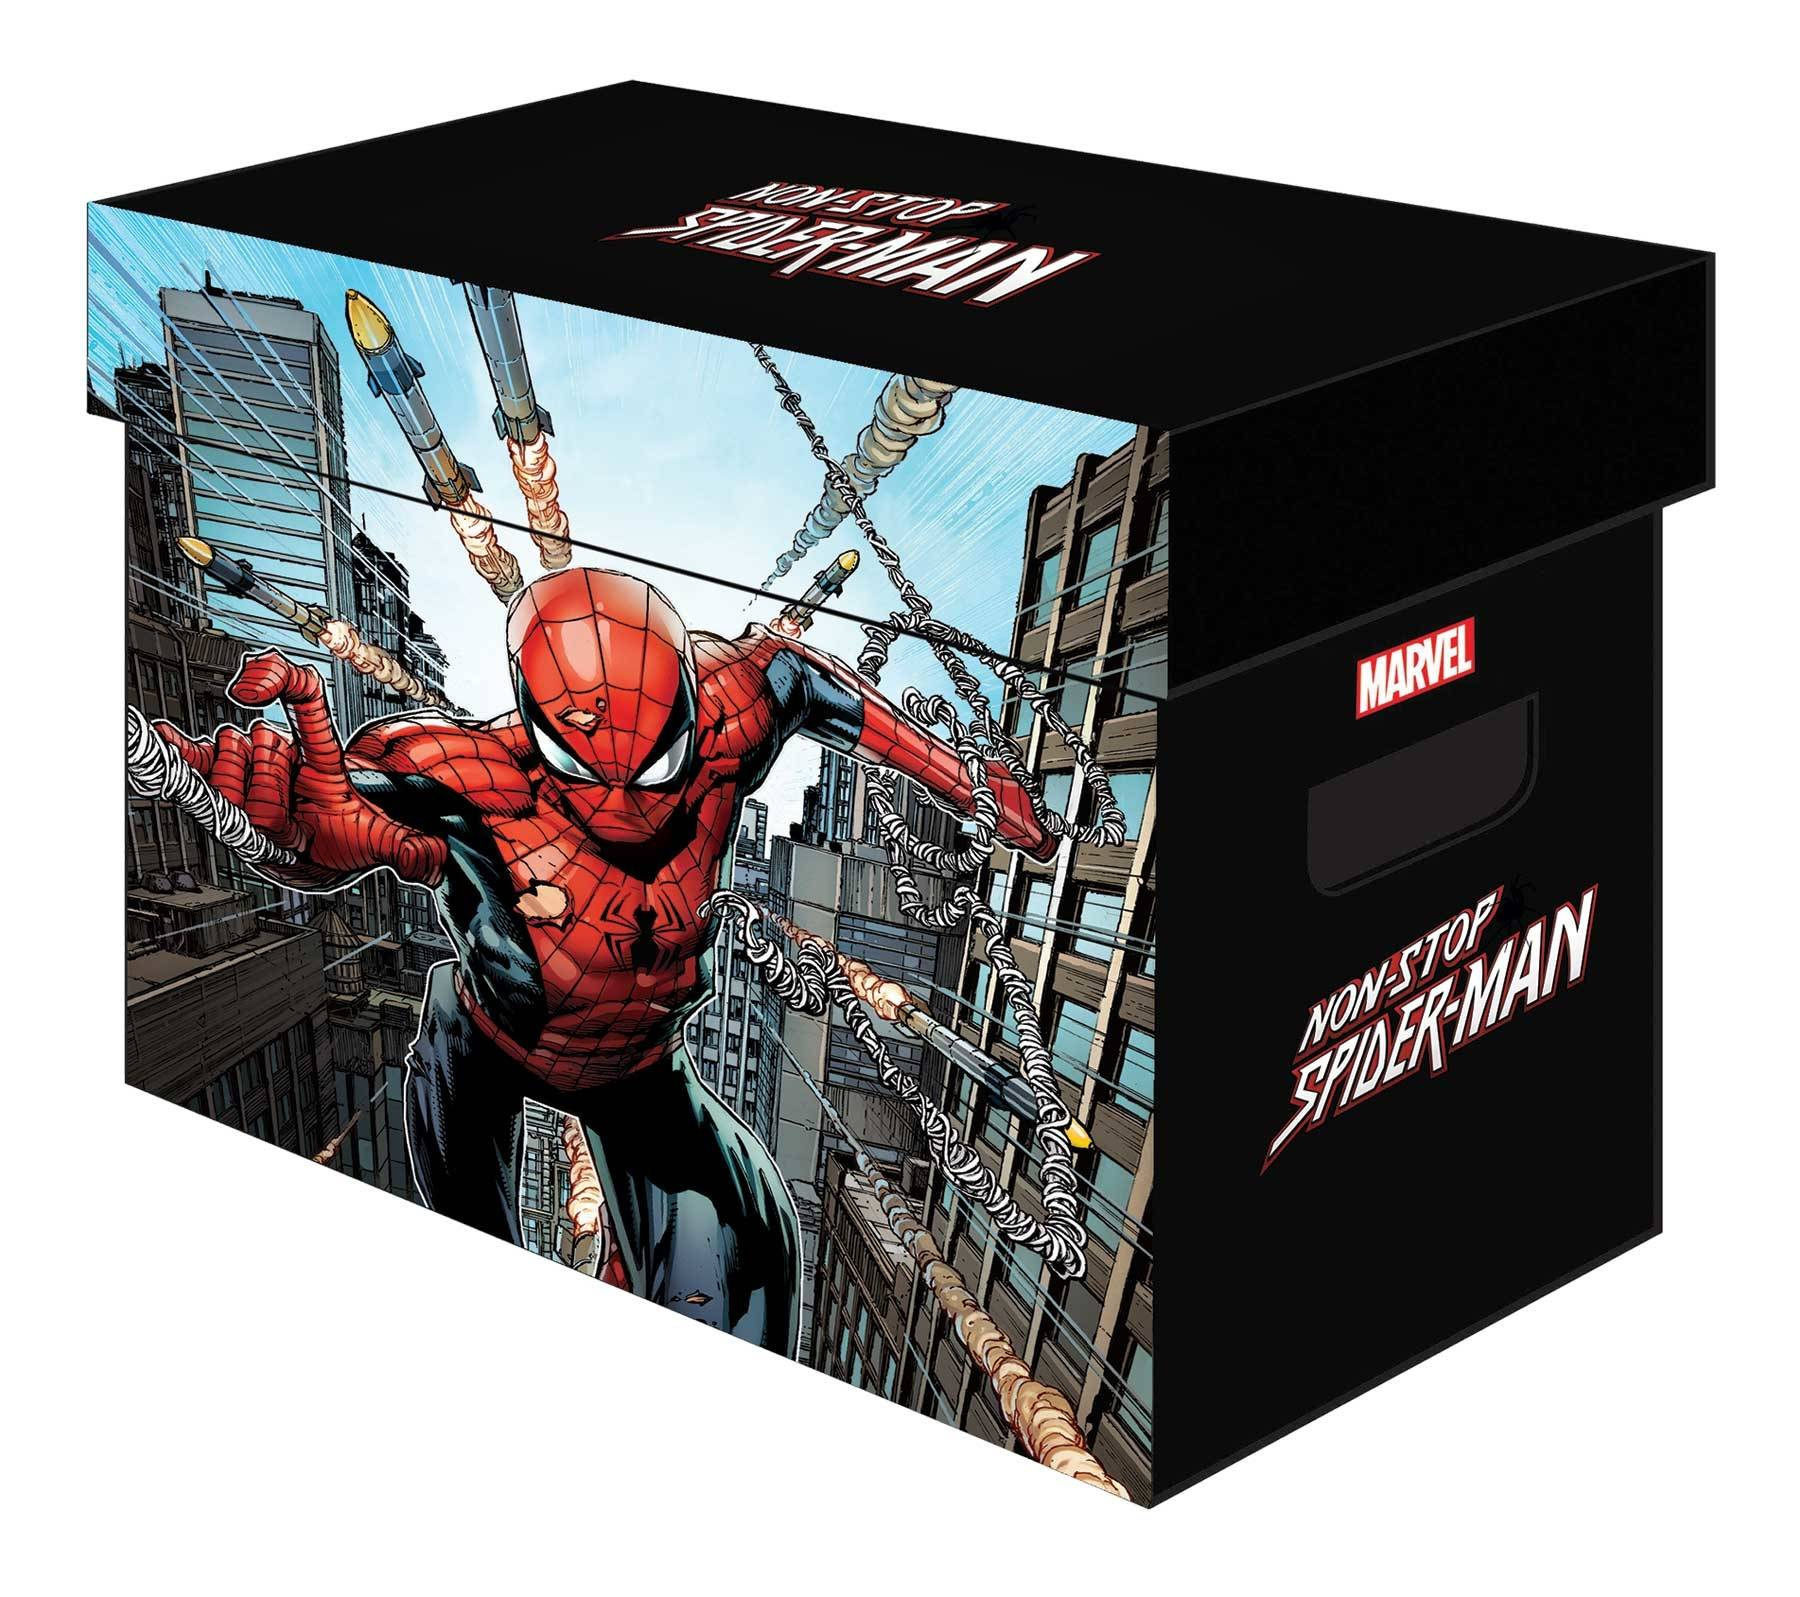 Custom hand made box cases for your nes, snes, as well as some n64, gameboy/color/advance games. Mar201128 Marvel Graphic Comic Boxes Non Stop Spider Man Bundle Of 5 Previews World